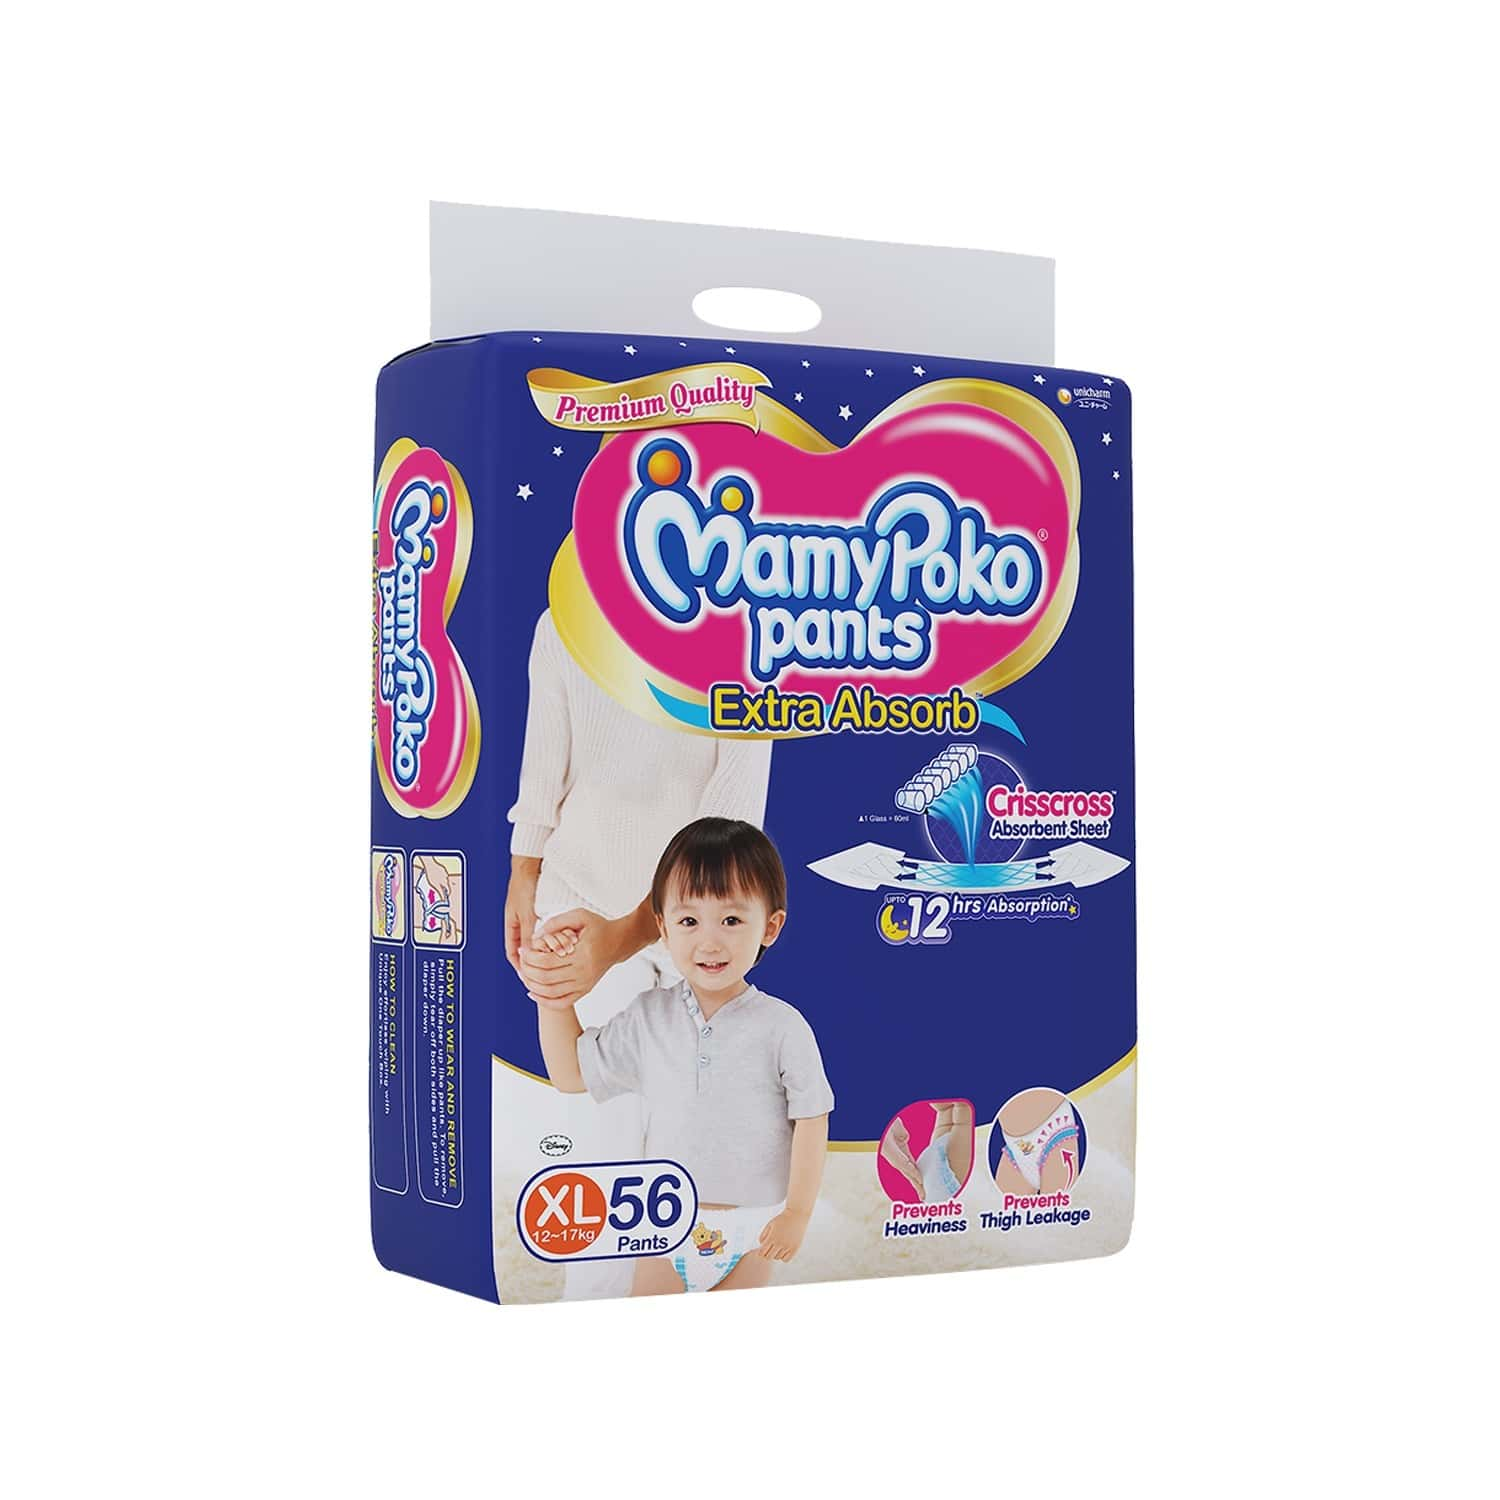 Mamypoko Pants Extra Absorb Diaper - Extra- Large Size, Pack Of 56 Diapers (xl-56)